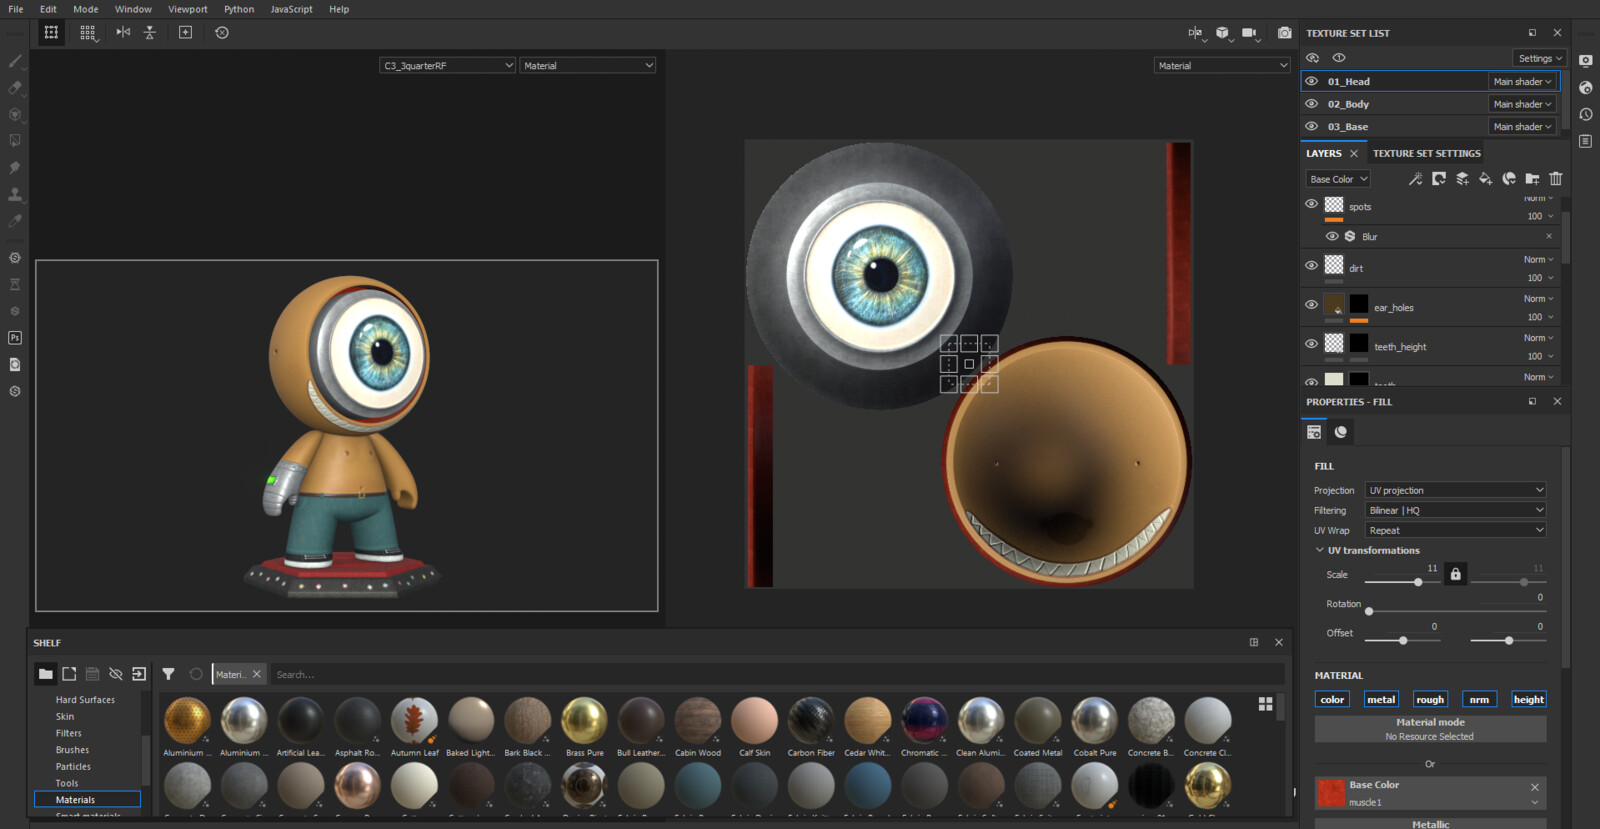 Texturing within Substance Painter